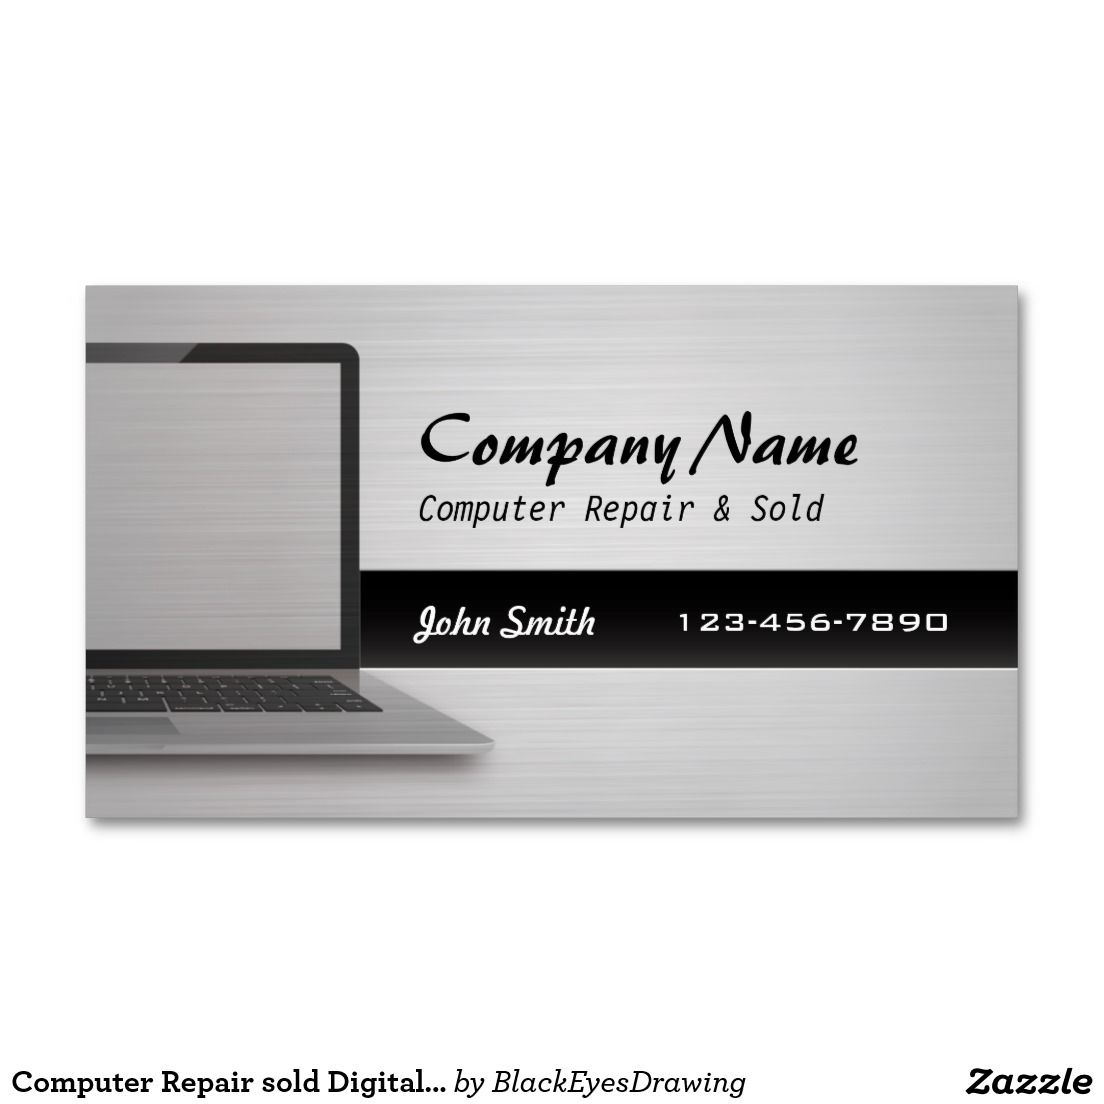 Pc repair business cards gallery free business cards computer repair sold digital silver business cards business computer repair sold digital silver business cards magicingreecefo magicingreecefo Images